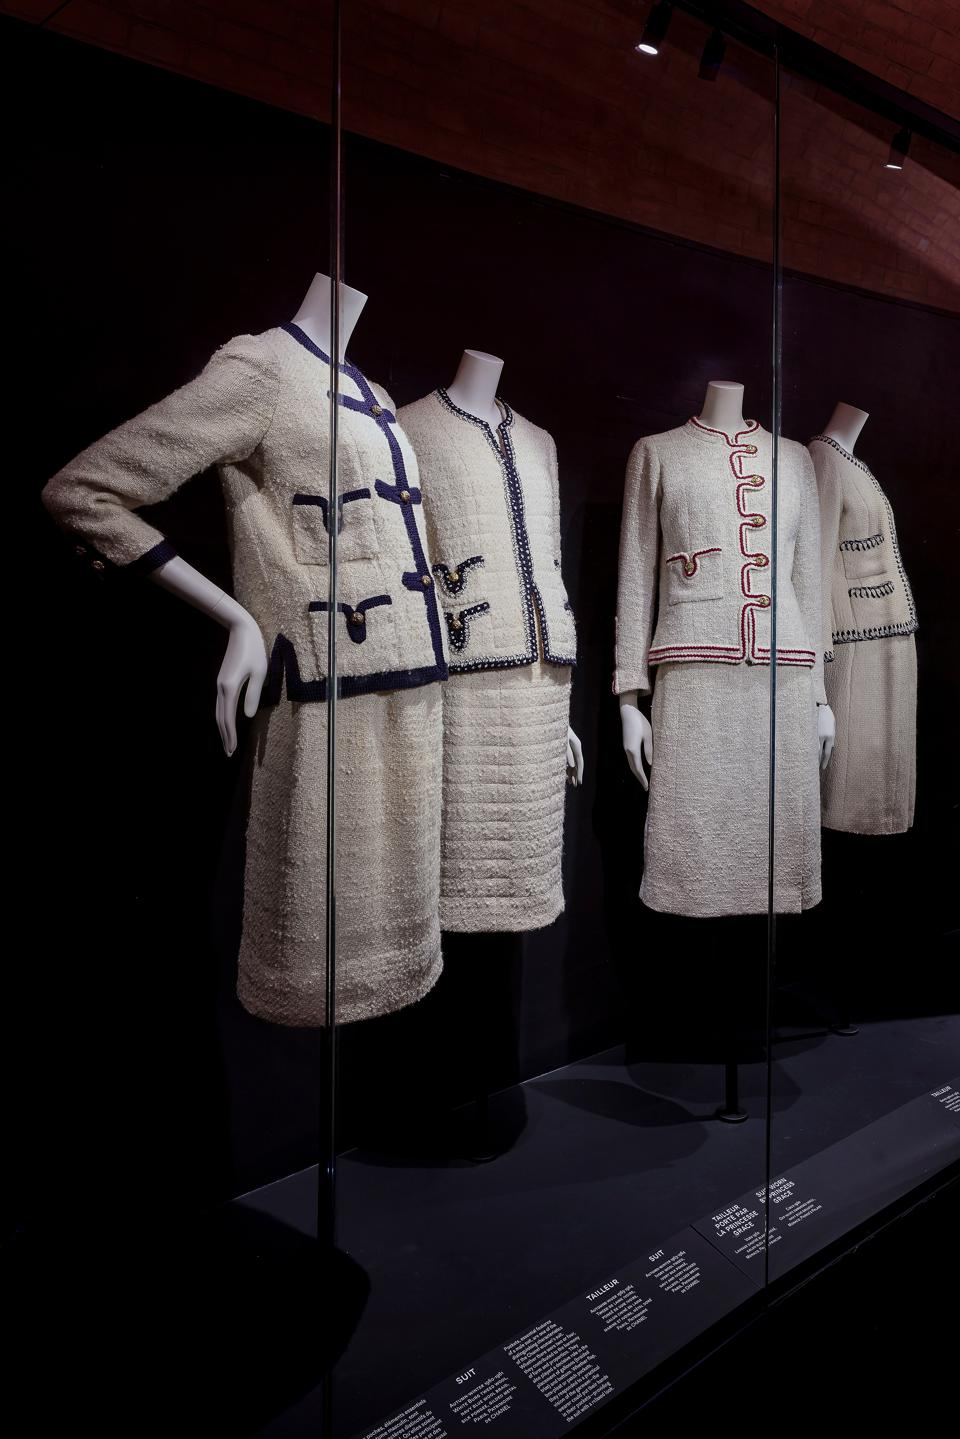 The new Gabrielle Chanel fashion exhibition